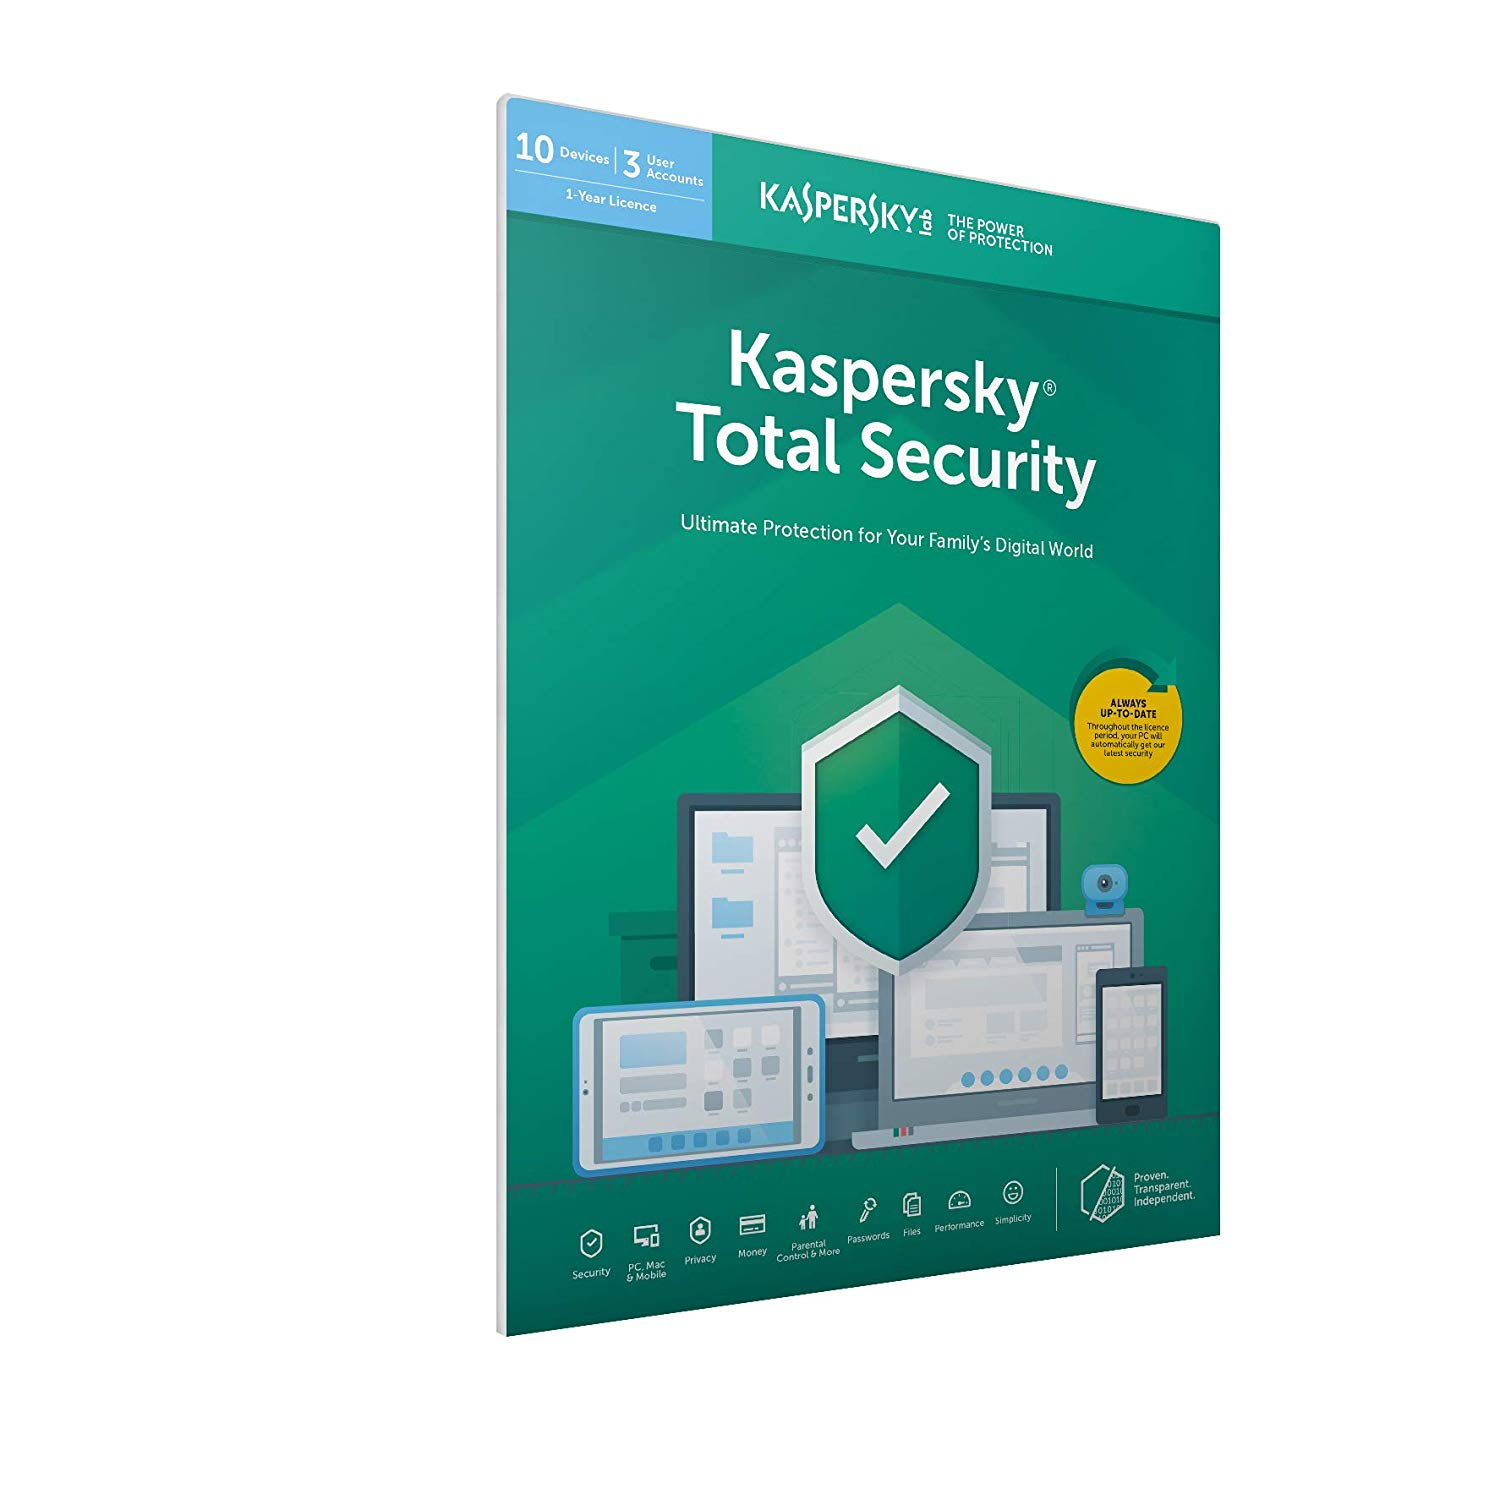 Kaspersky Total Security 2019 | 10 Devices | 1 Year | PC/Mac/Android | Activation Code by Post @Amazon